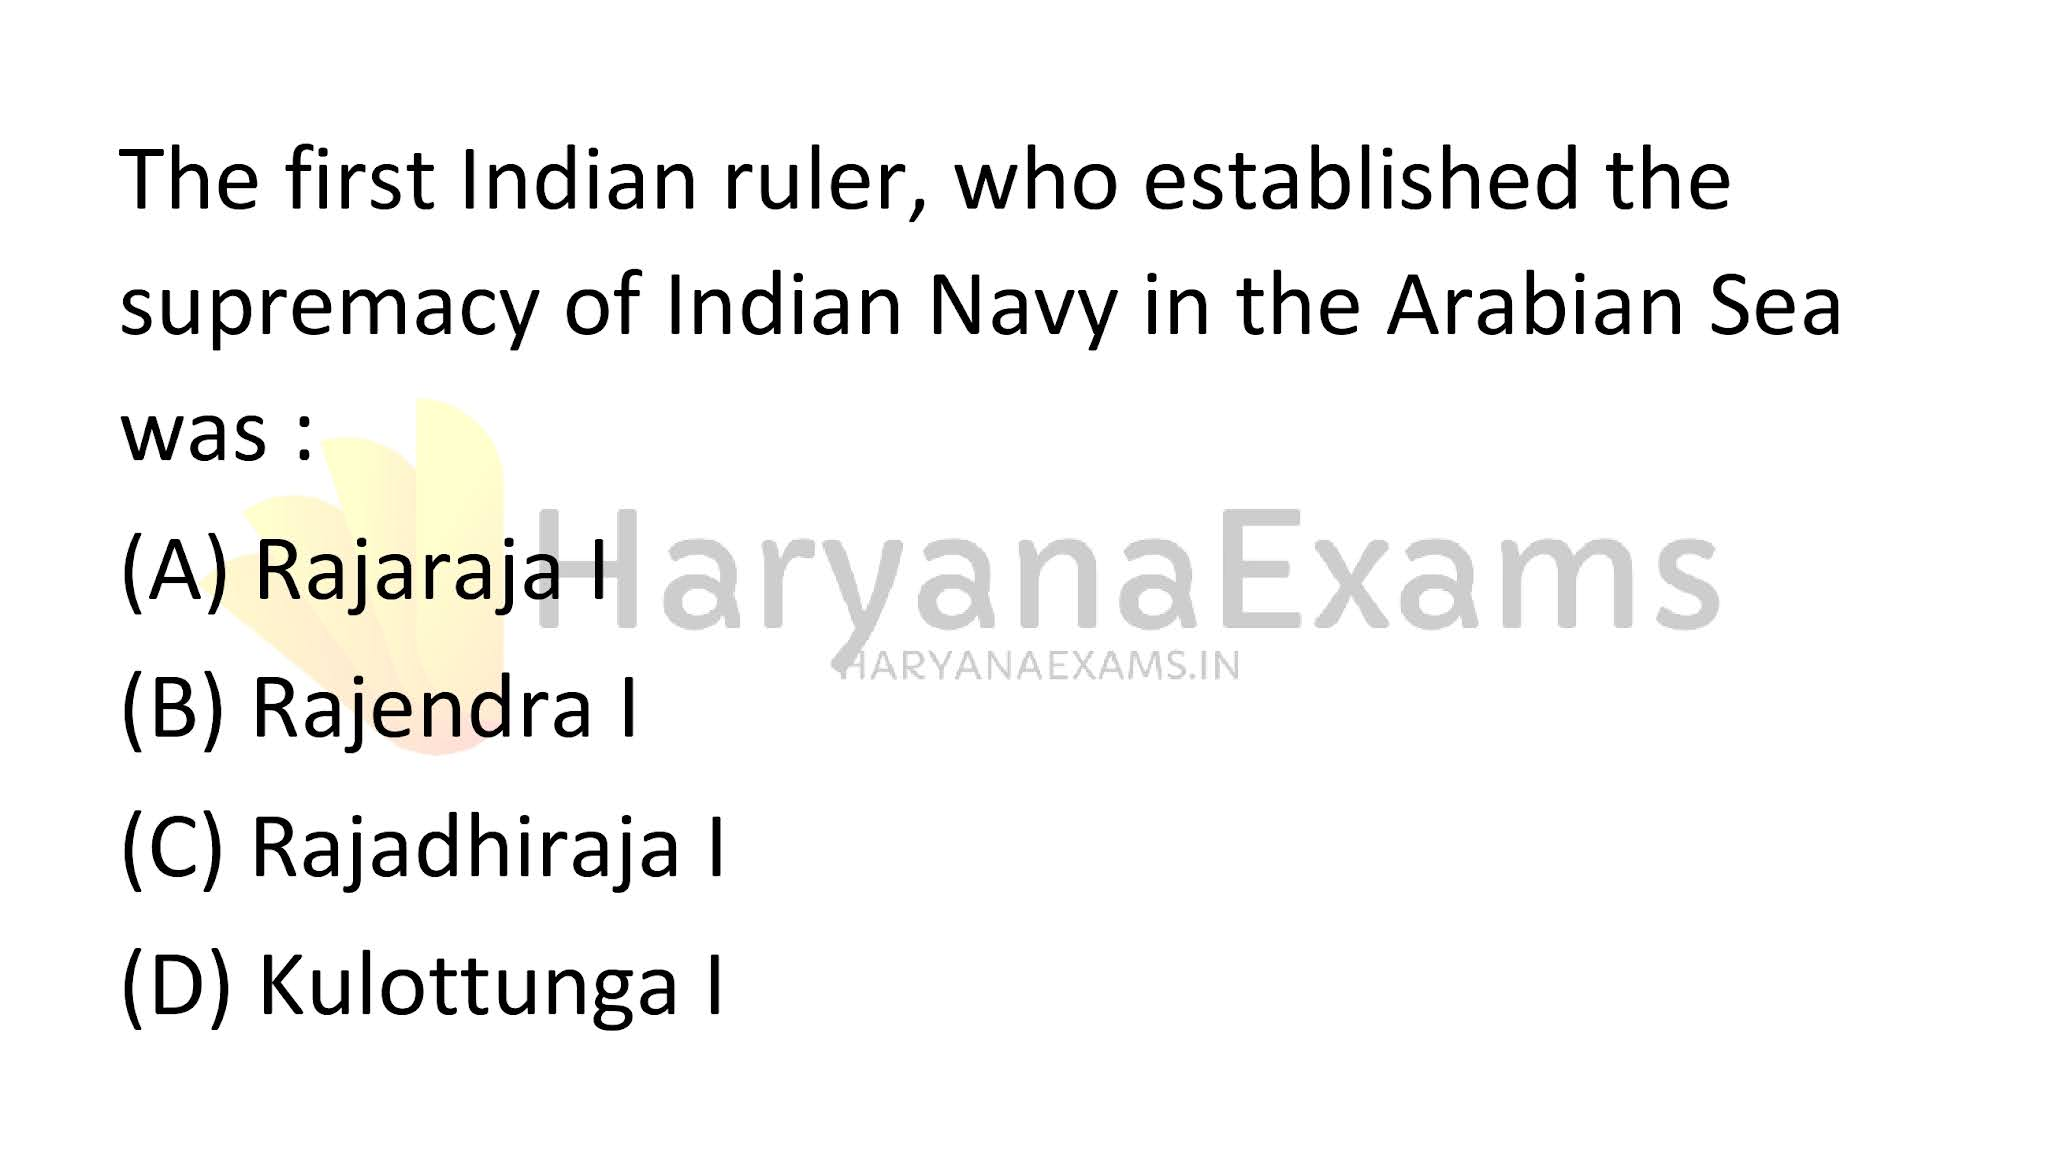 The first Indian ruler, who established the supremacy of the Indian Navy in the Arabian Sea was :